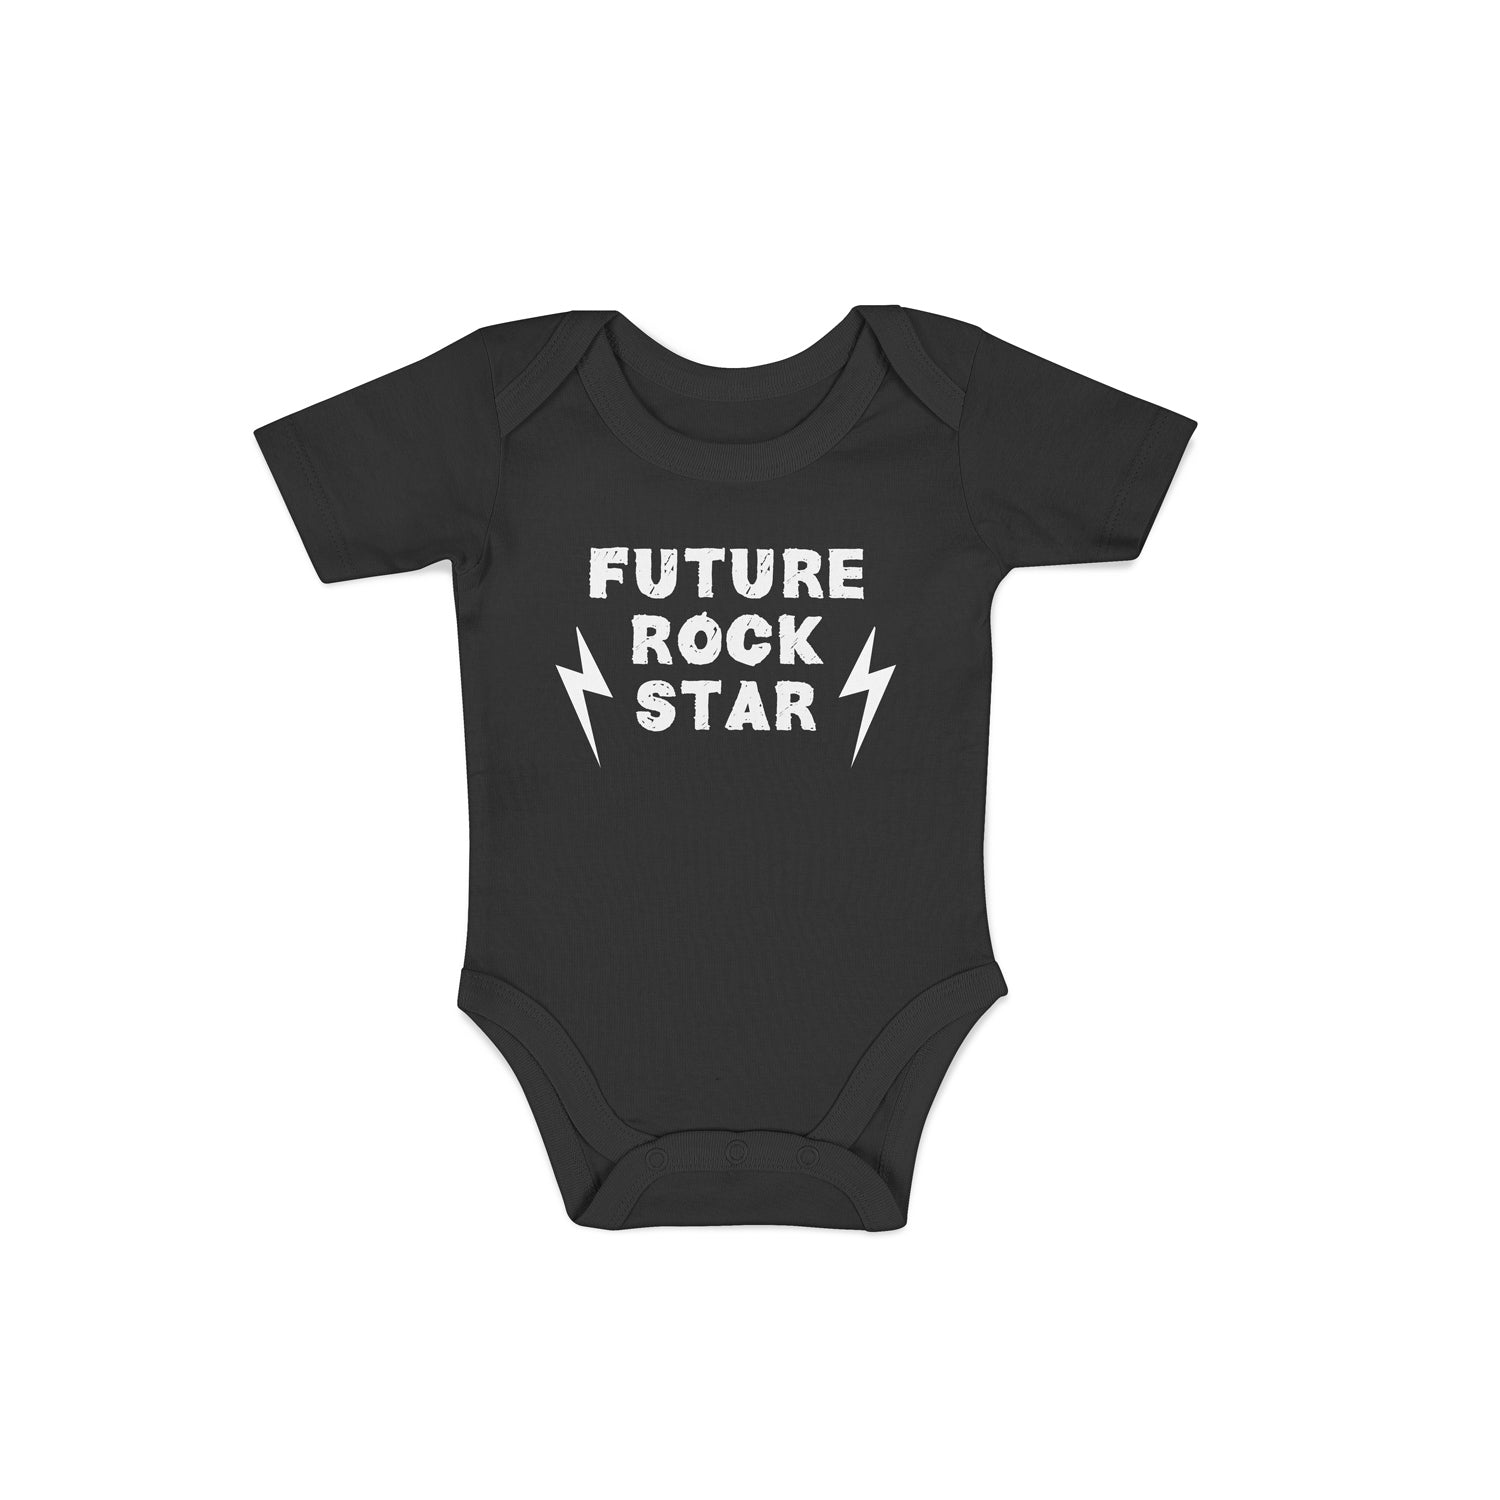 'Future rock star' baby grow in black